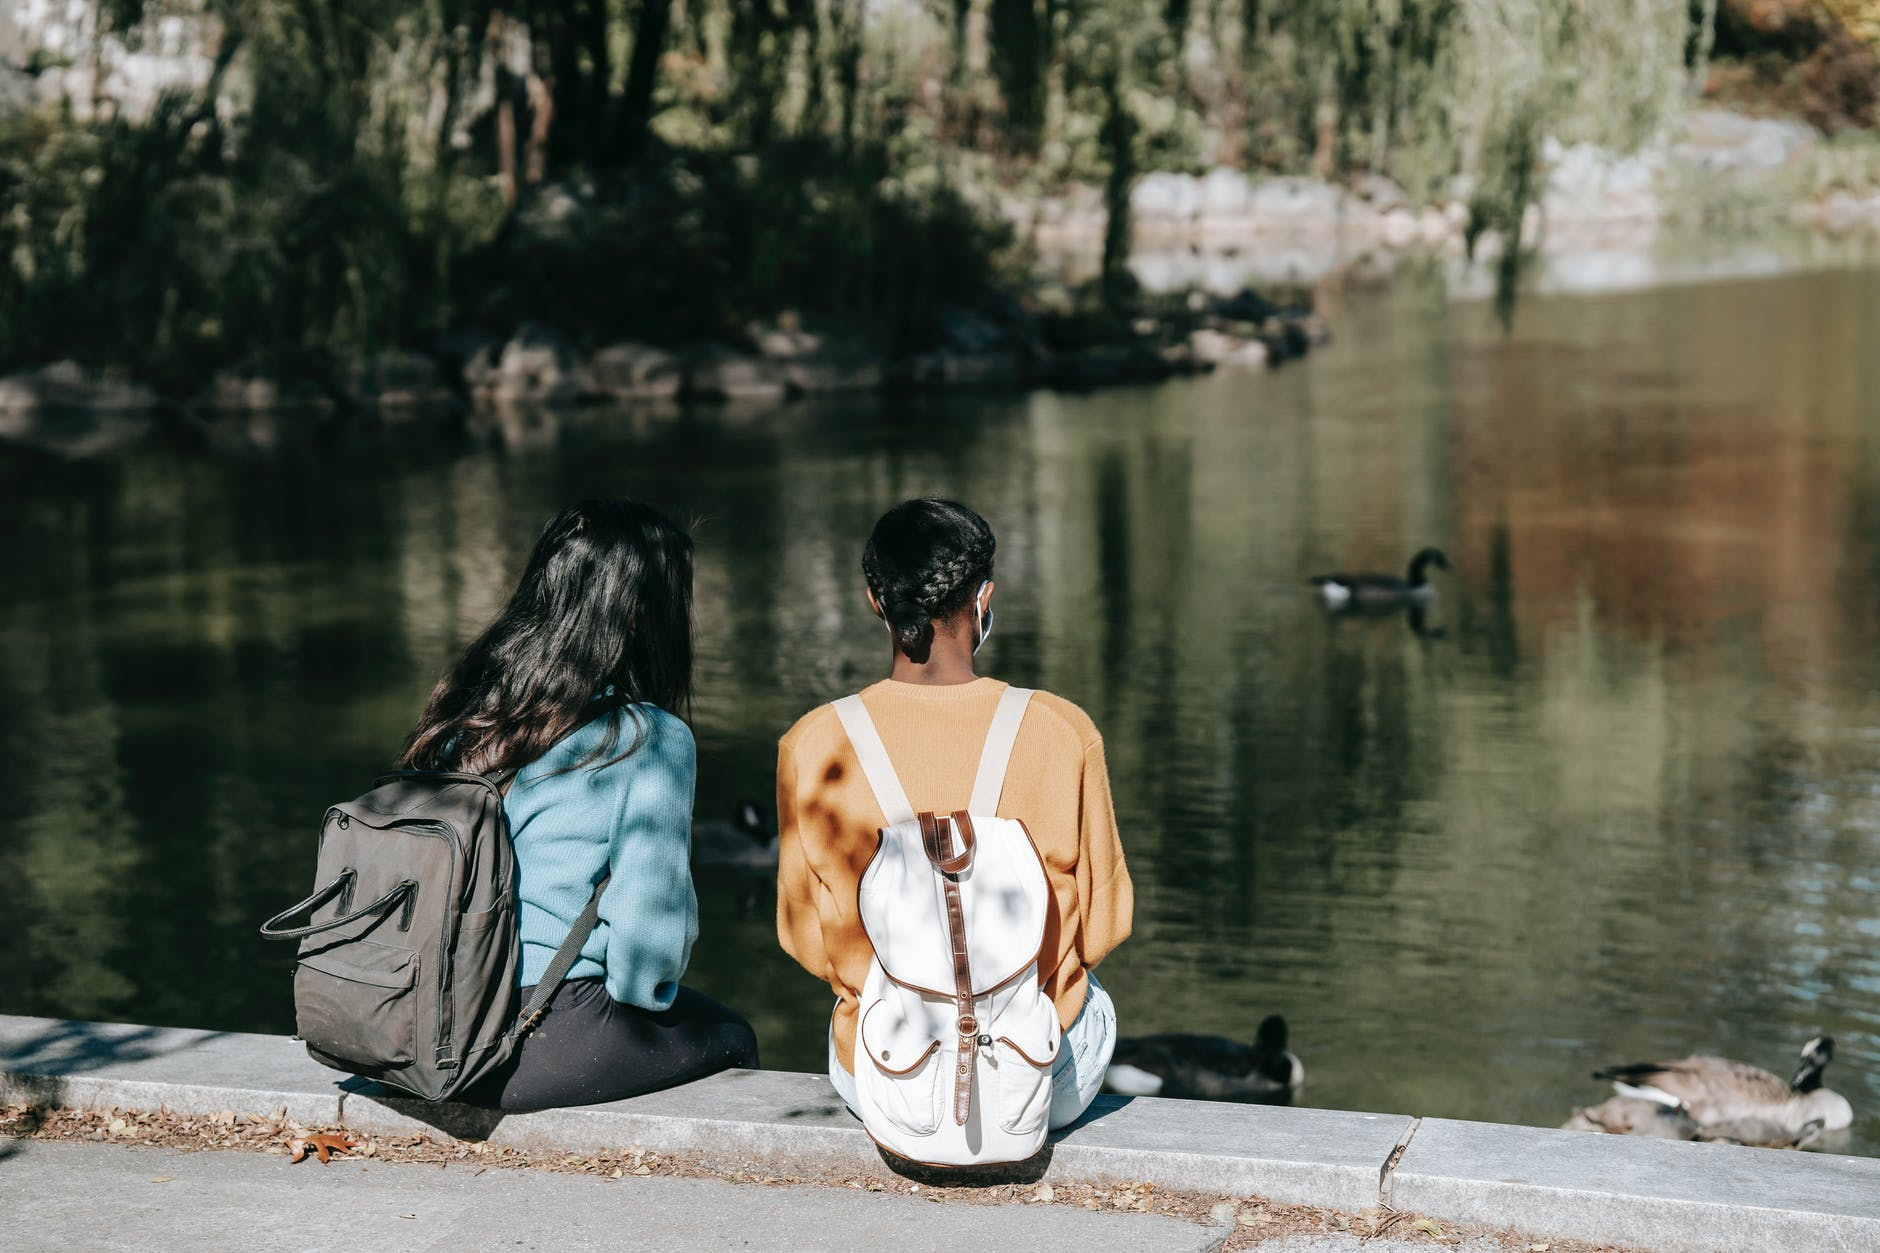 young women having rest near calm lake with ducks